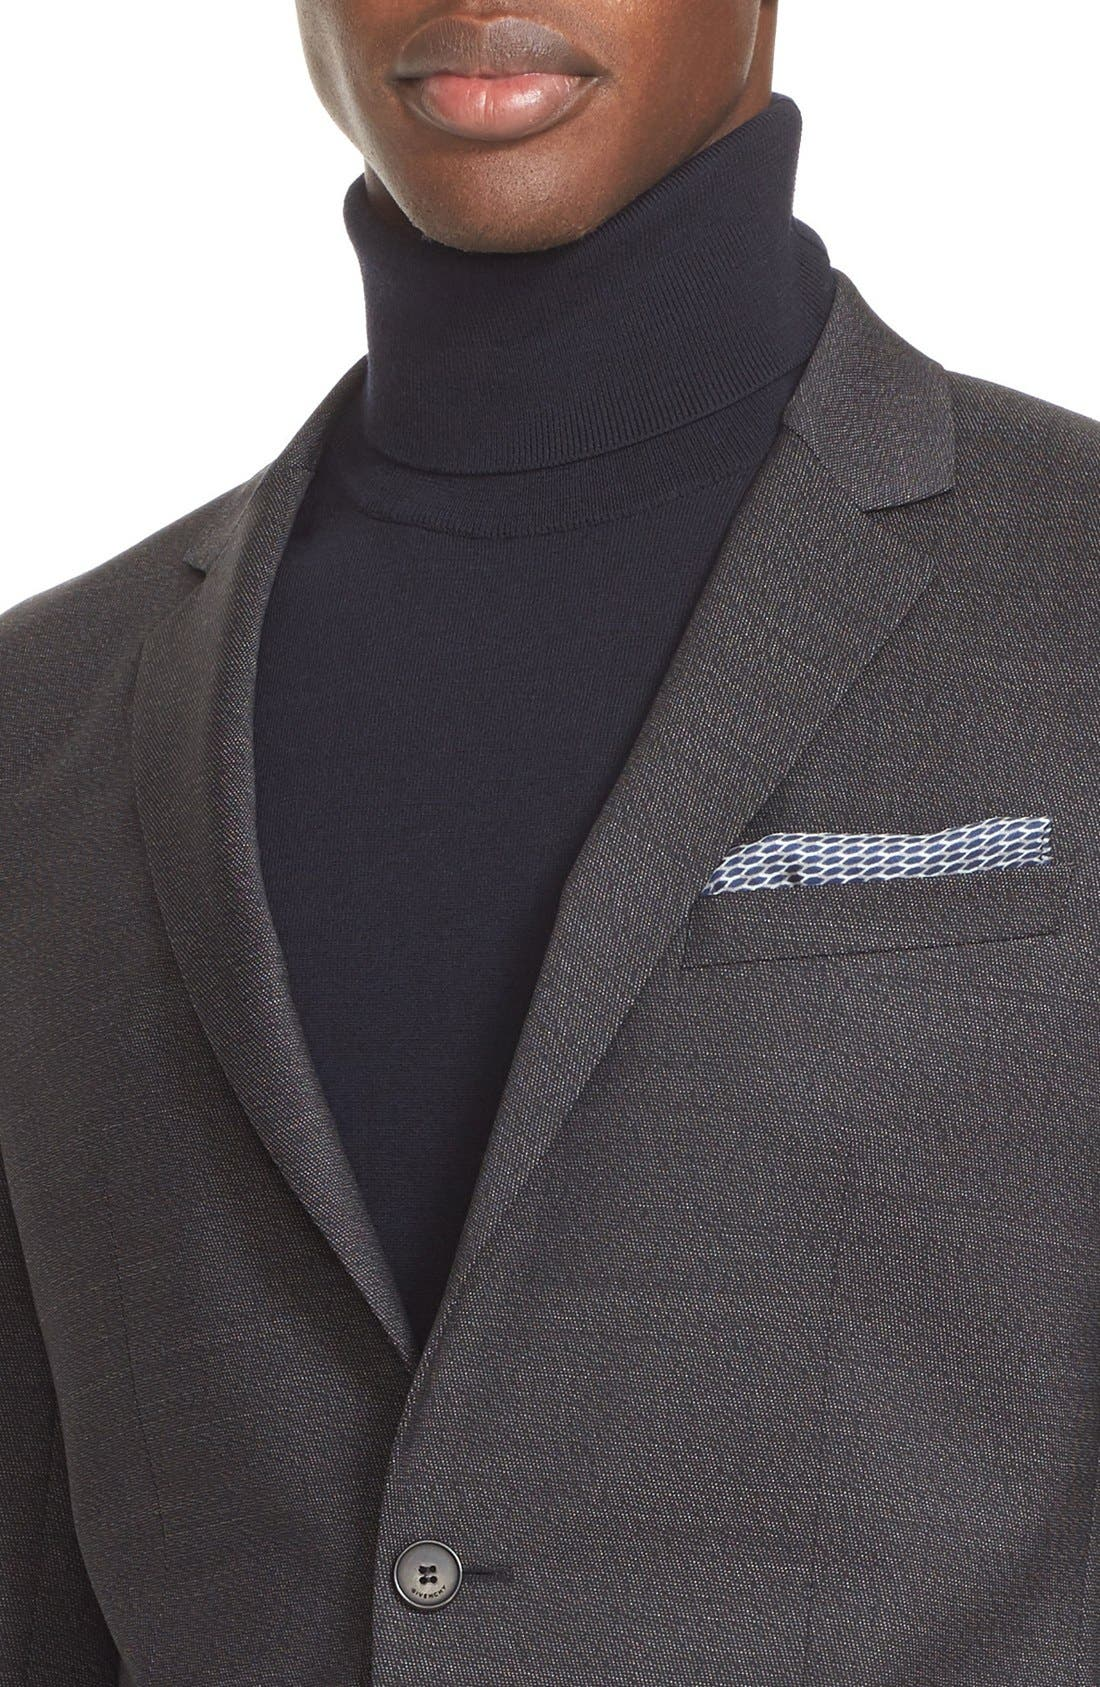 Extra Trim Fit Textured Wool Suit,                             Alternate thumbnail 5, color,                             BLACK